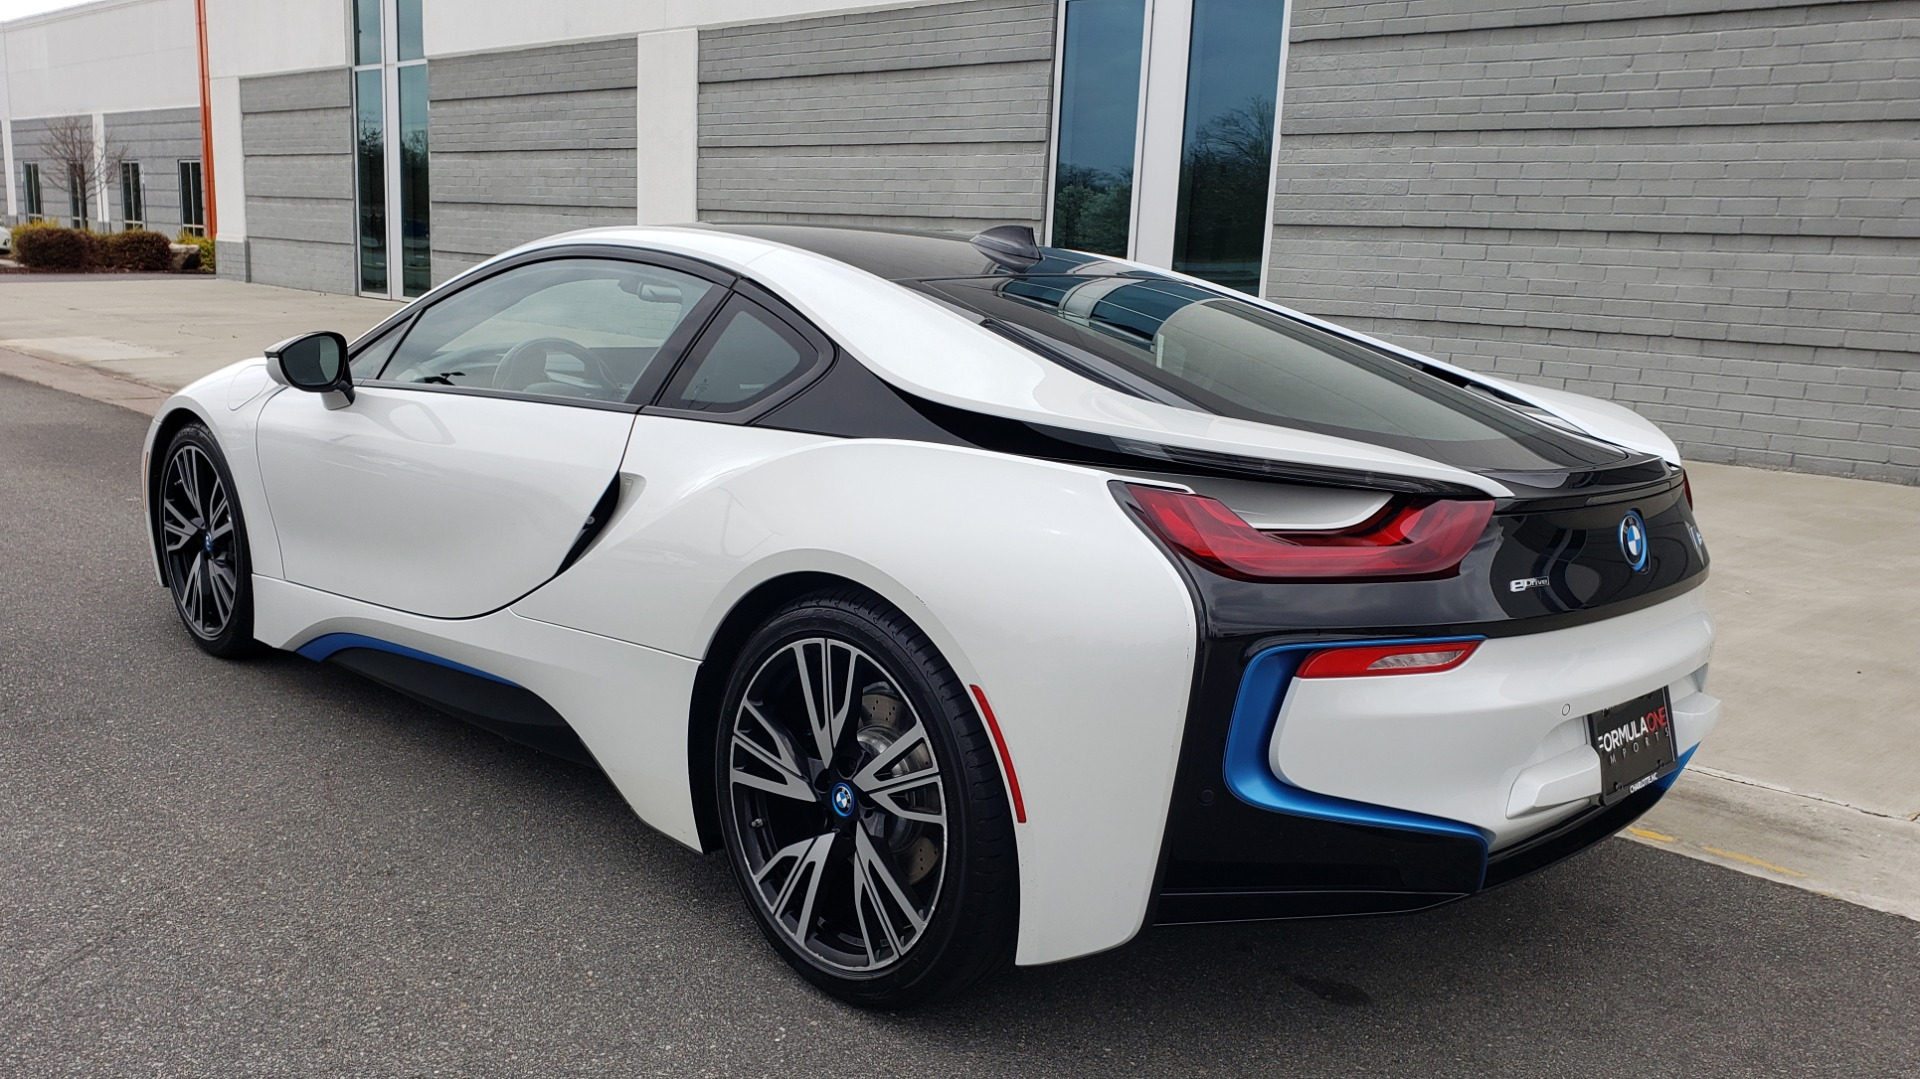 Used 2016 BMW i8 COUPE / GIGA WORLD / NAV / HUD / 20IN WHEELS / REARVIEW for sale Sold at Formula Imports in Charlotte NC 28227 8